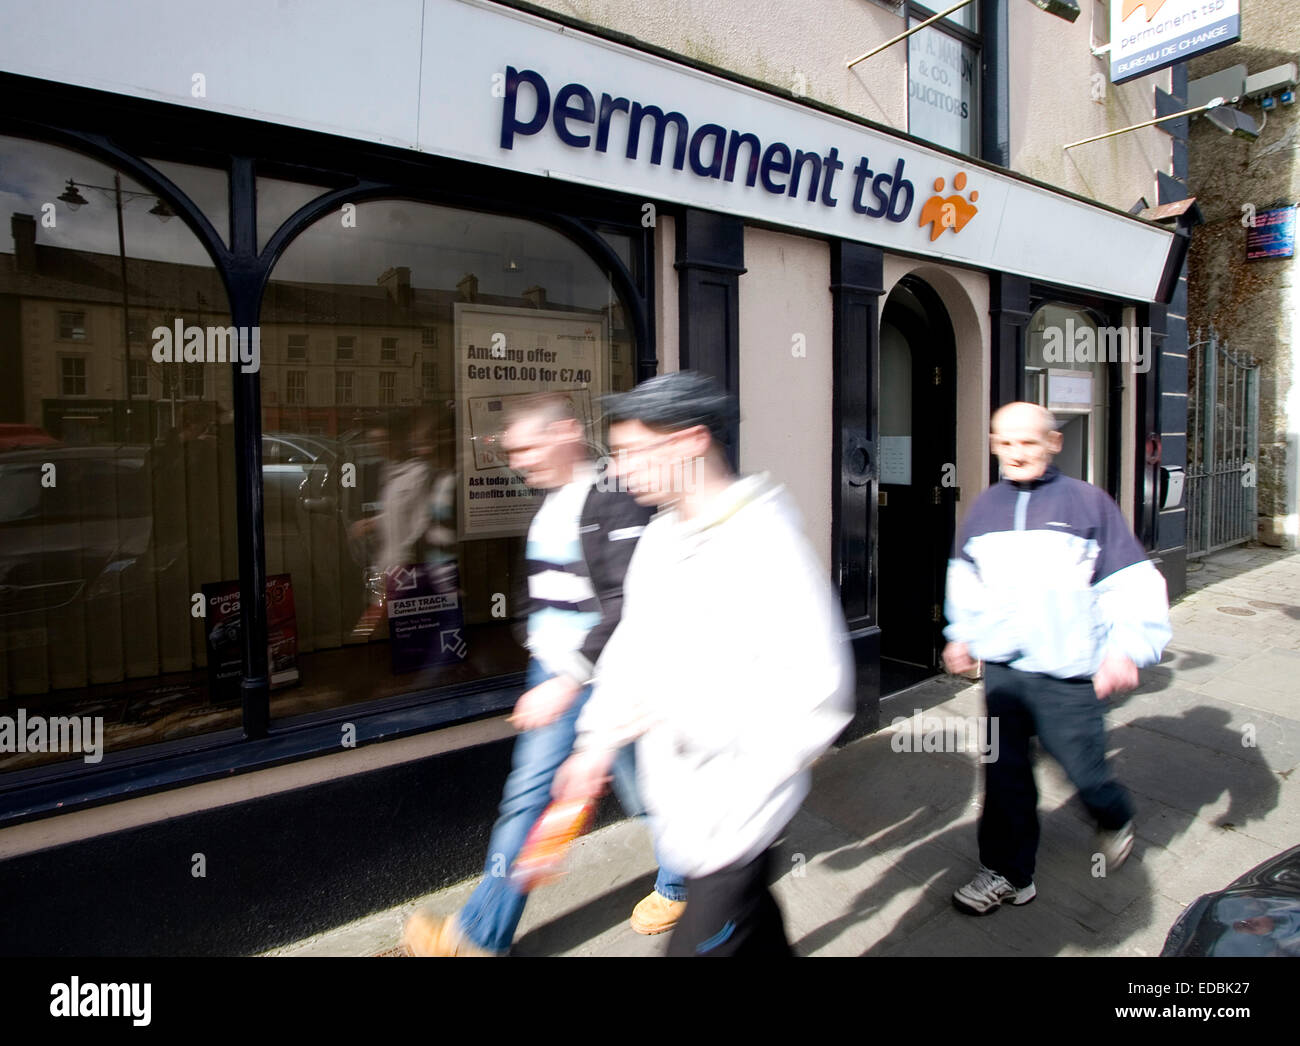 Une succursale de permanent tsb Bank, Roscommon, ouest de l'Irlande. Photo Stock